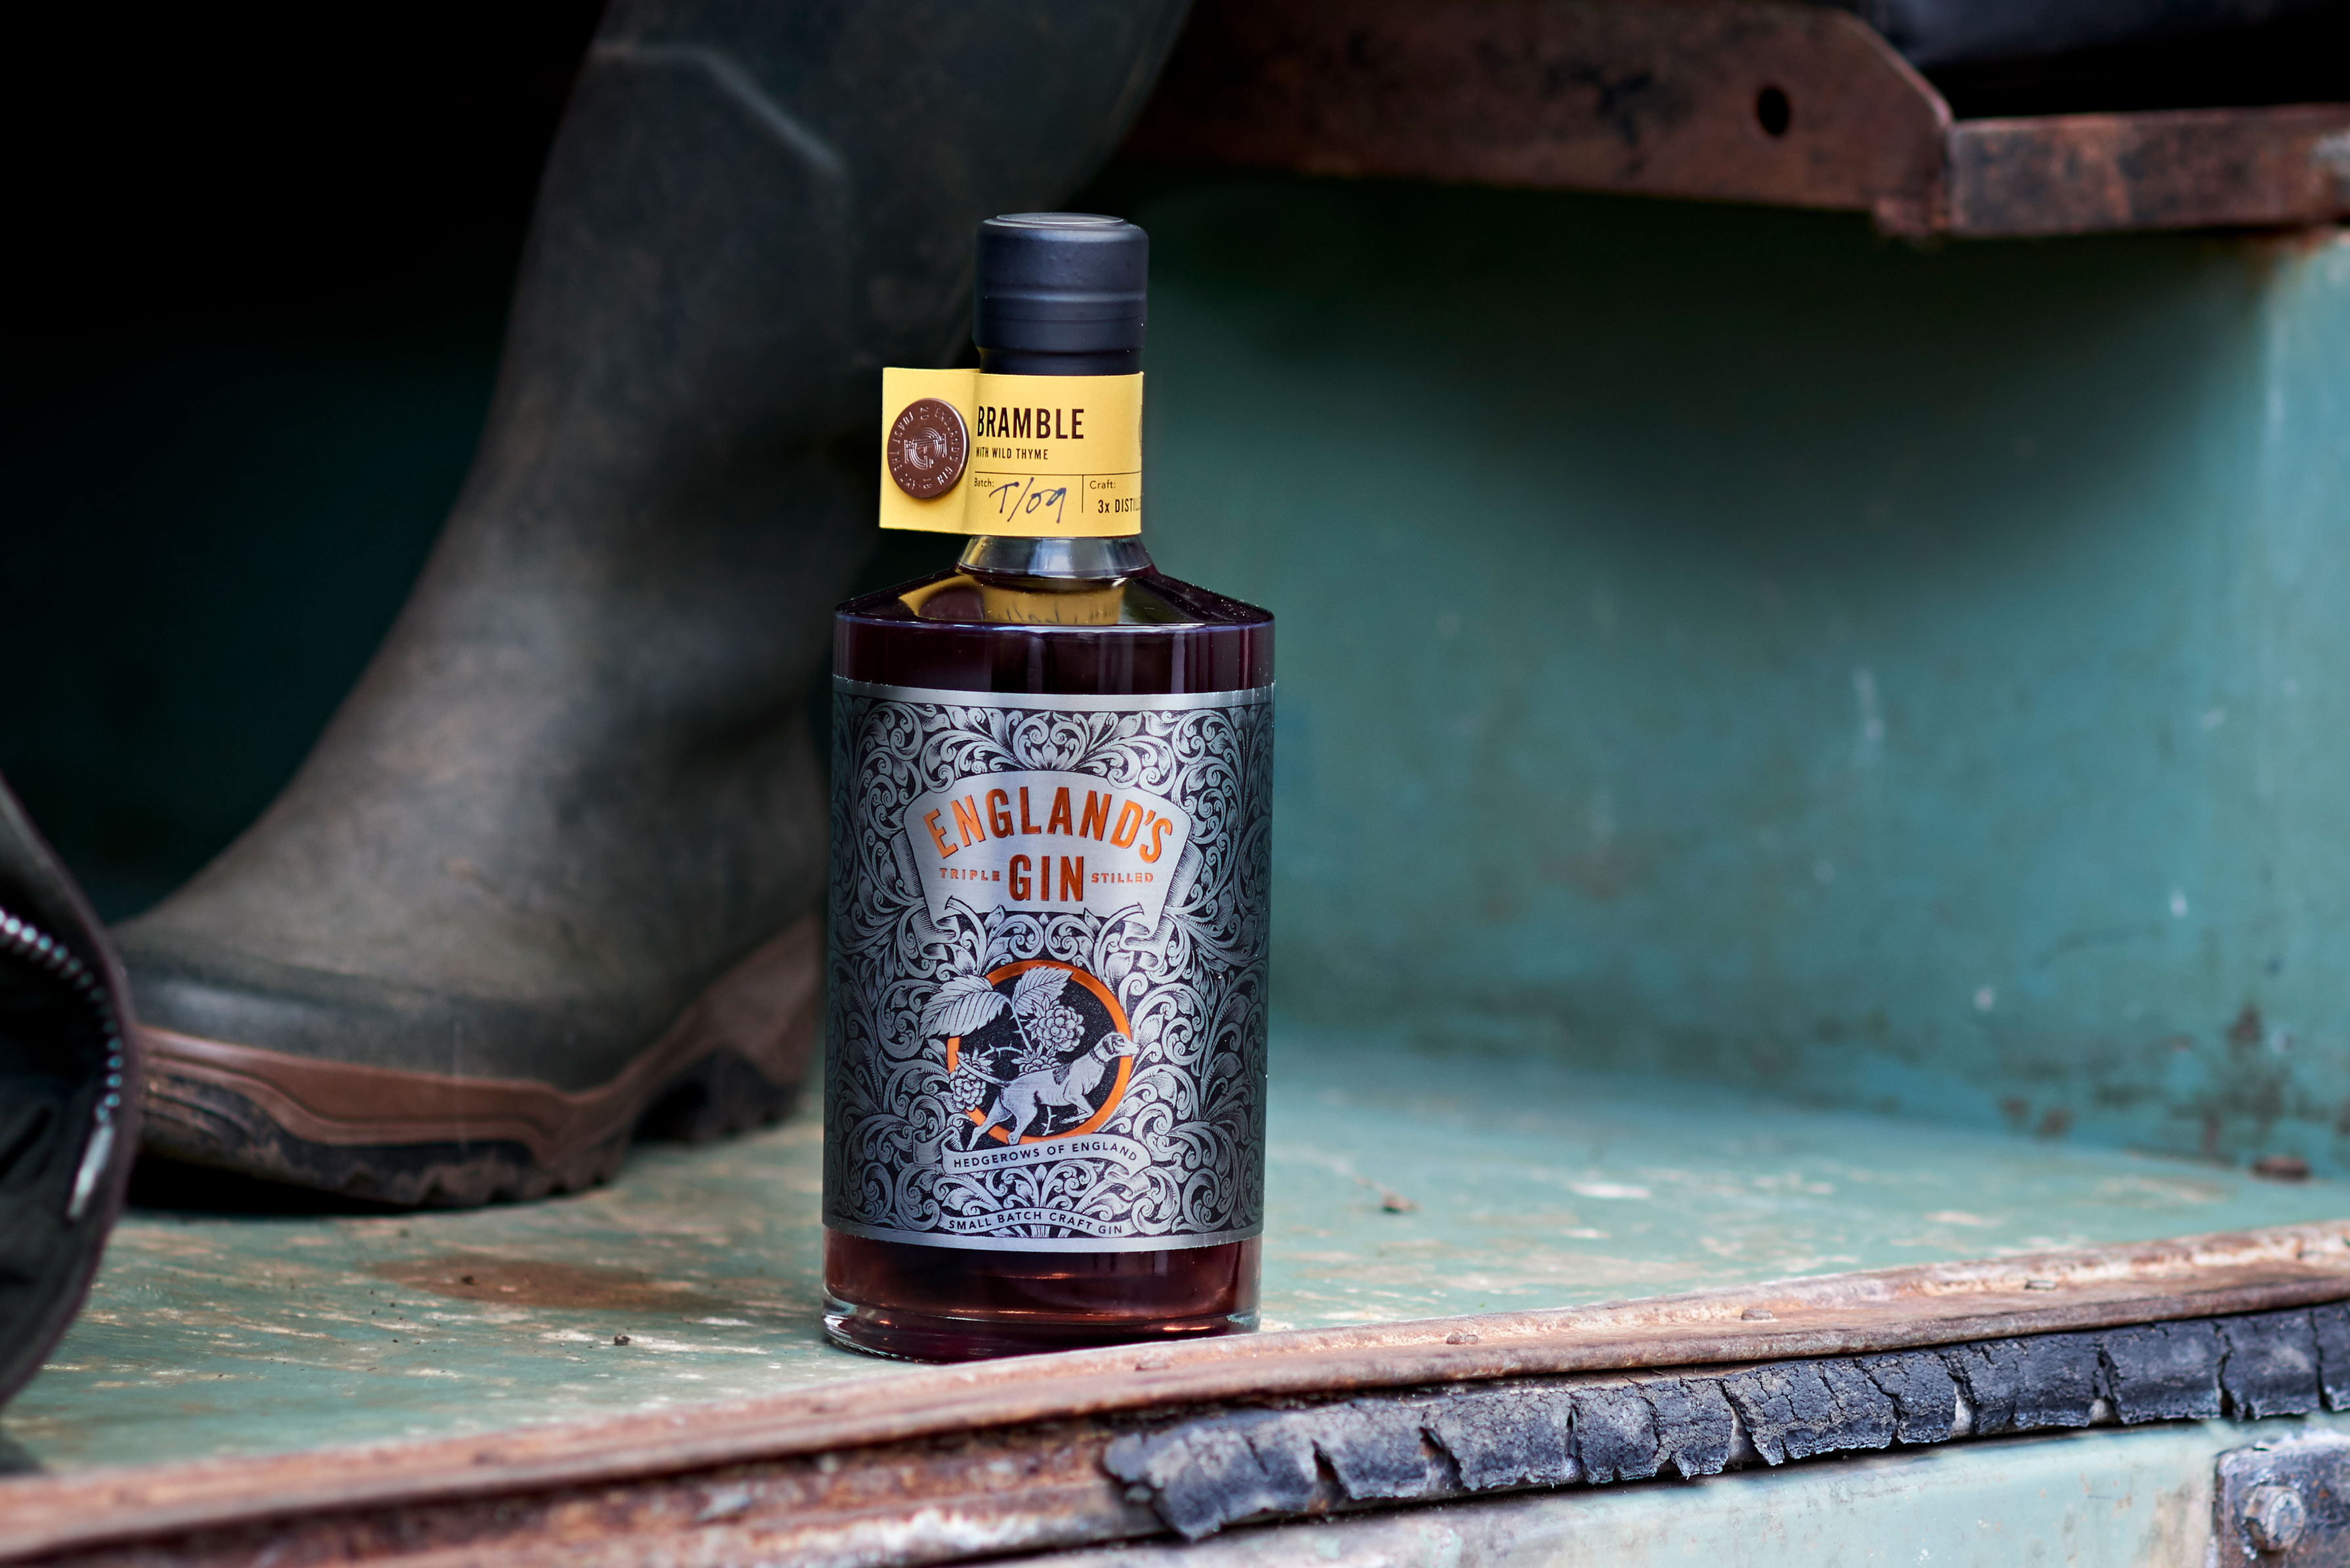 Brand Design for England's Gin, Made From the Hedgerows of England